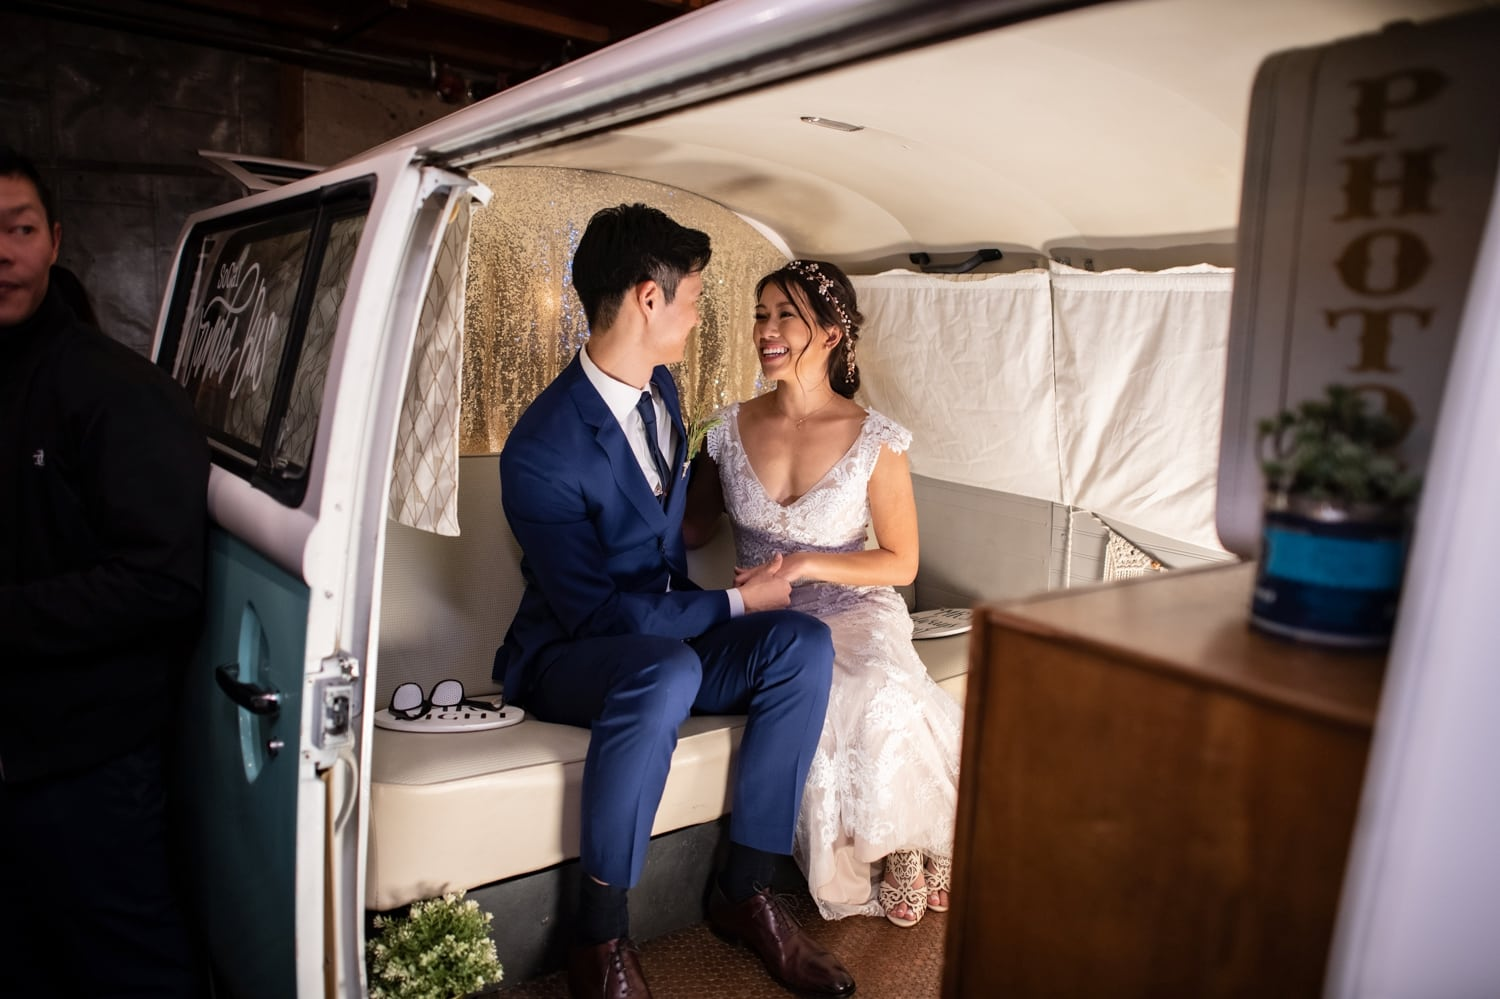 Bride and groom in a photo booth van in San Diego.